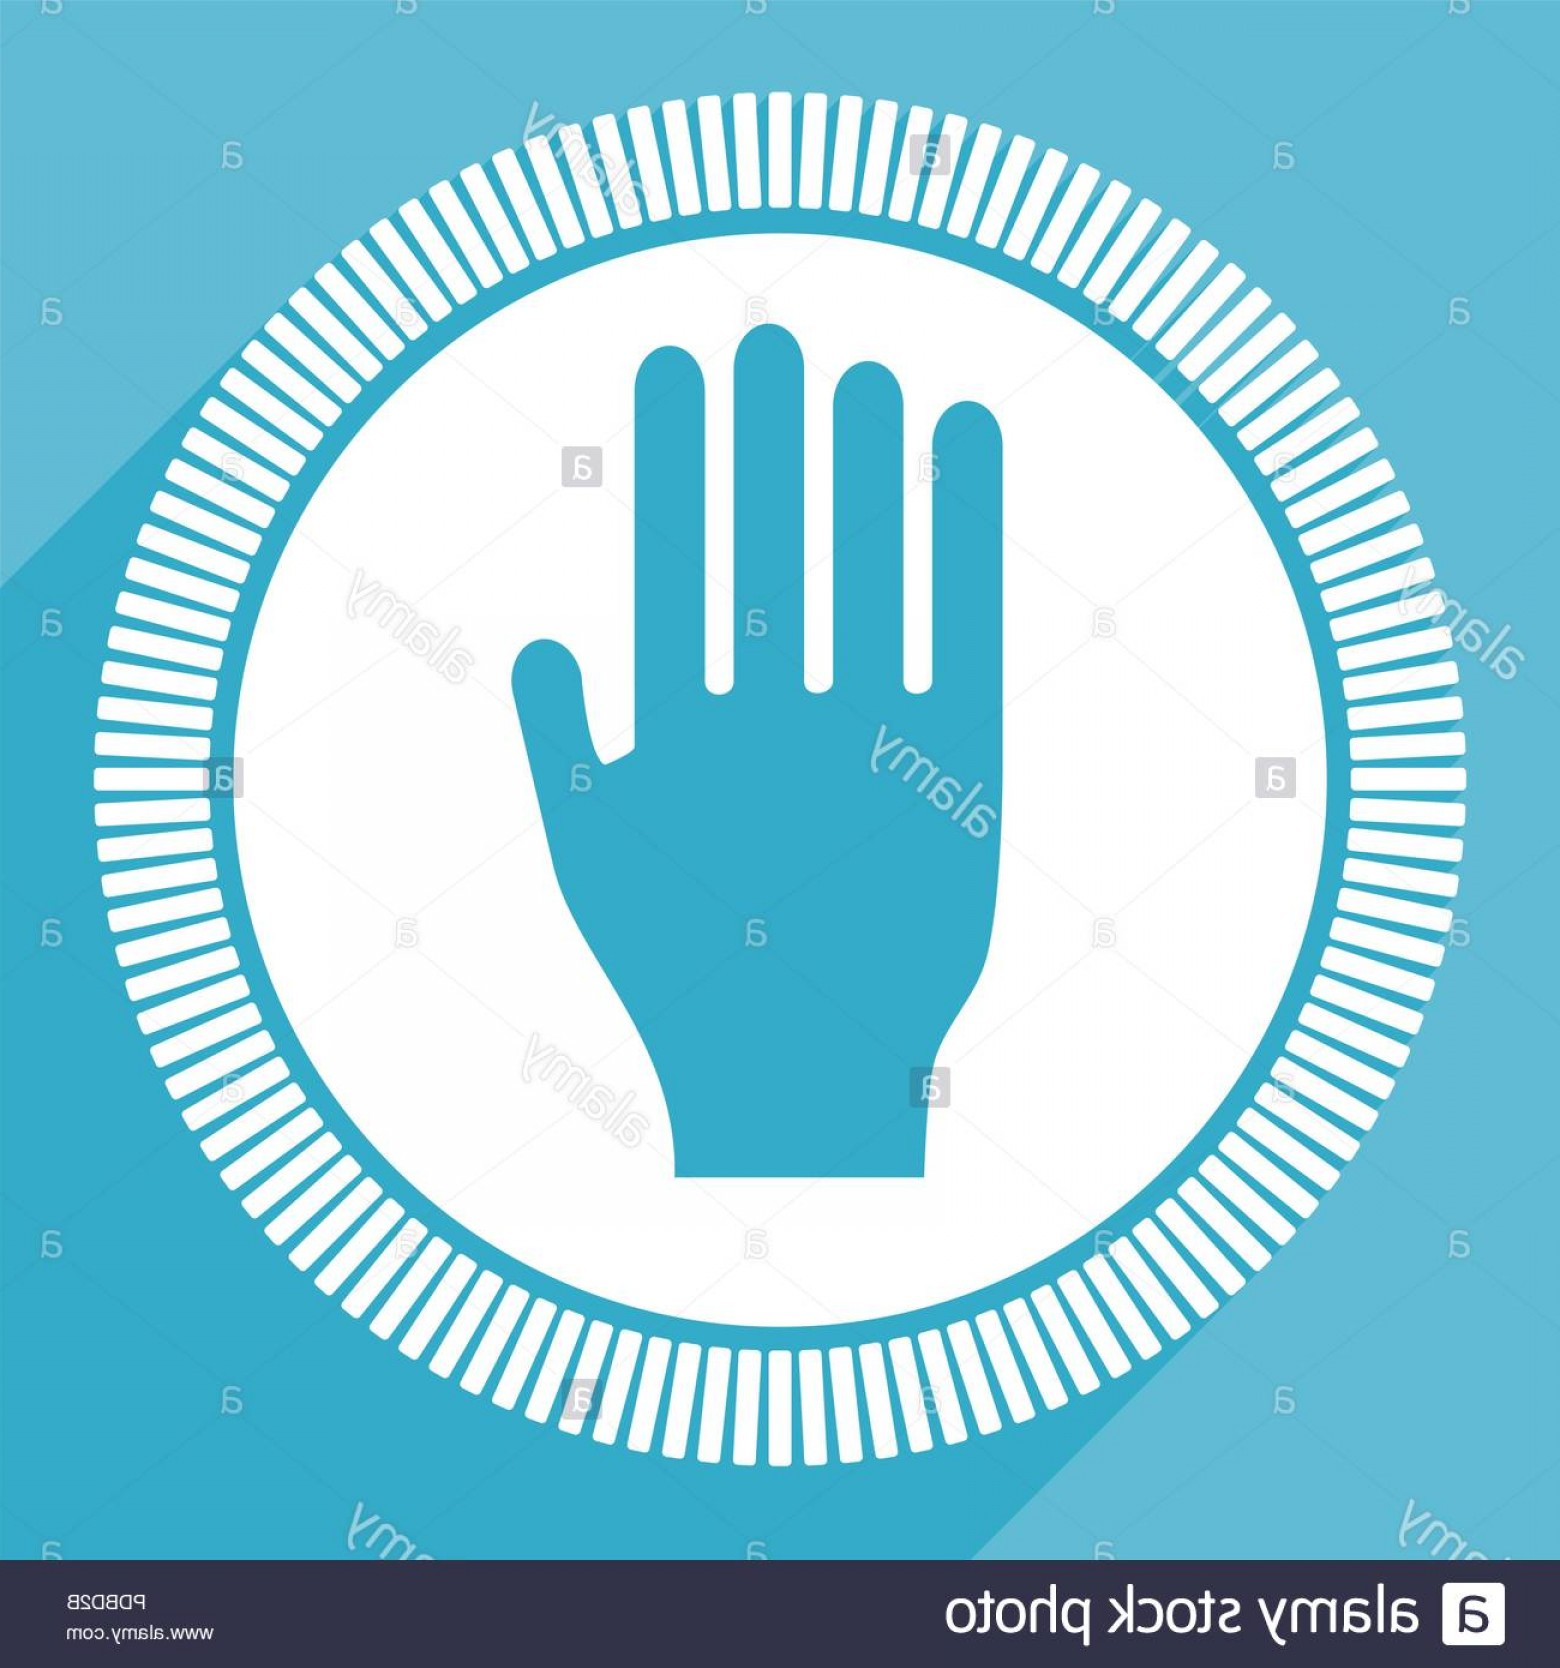 Hand Stop Vector Teal: Stop Editable Flat Vector Icon Hand Square Web Button Palm Blue Computer And Smartphone Application Sign In Eps Image